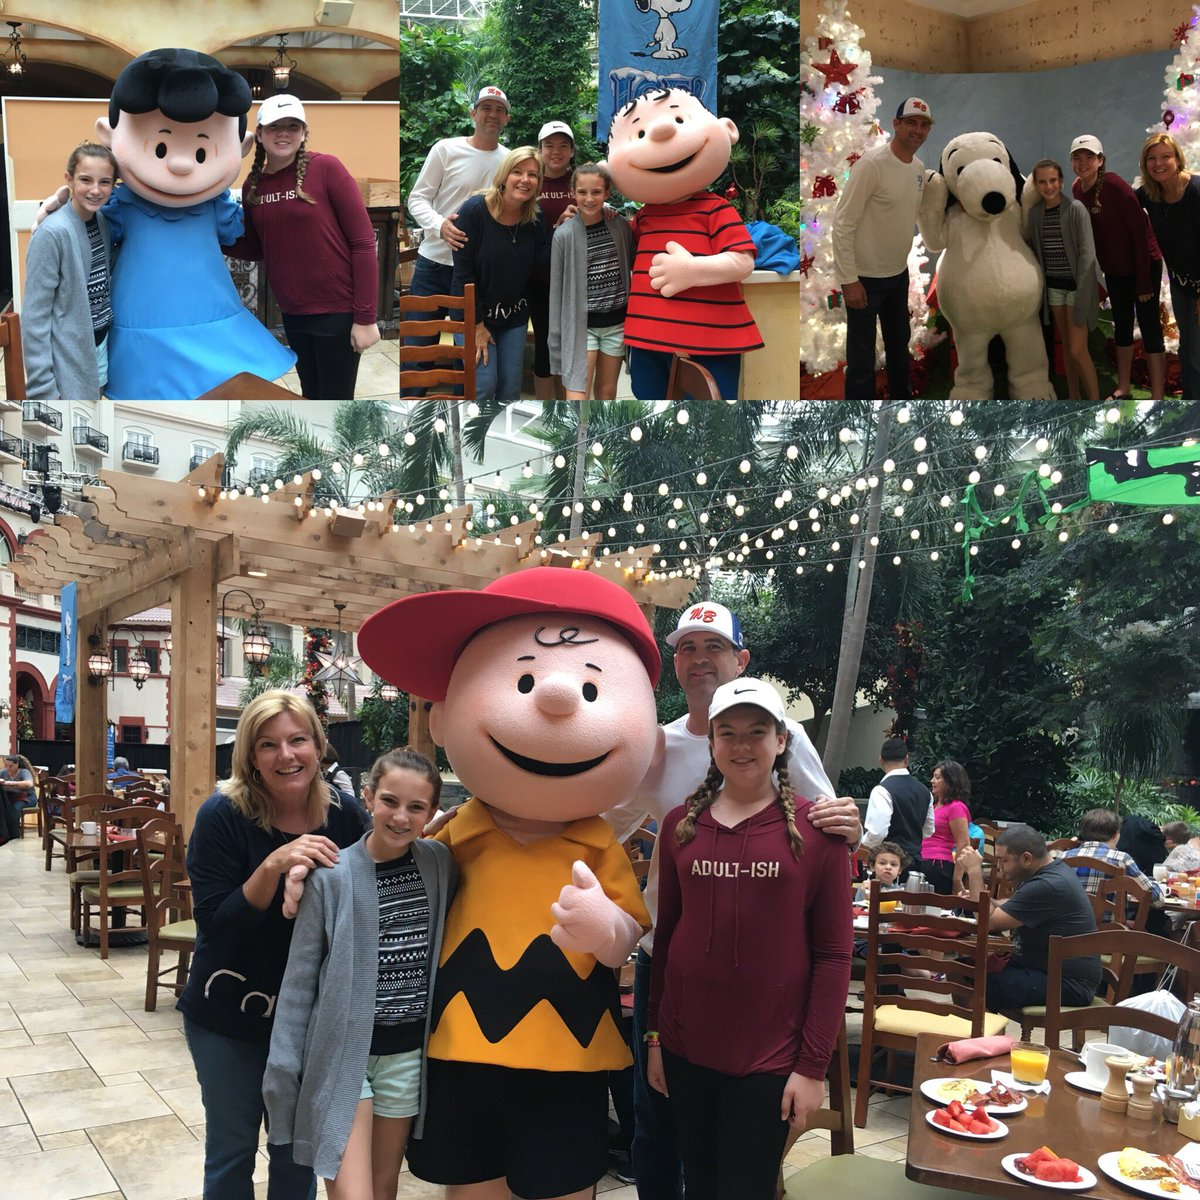 Breakfast with the Peanuts gang!!@Gaylor...